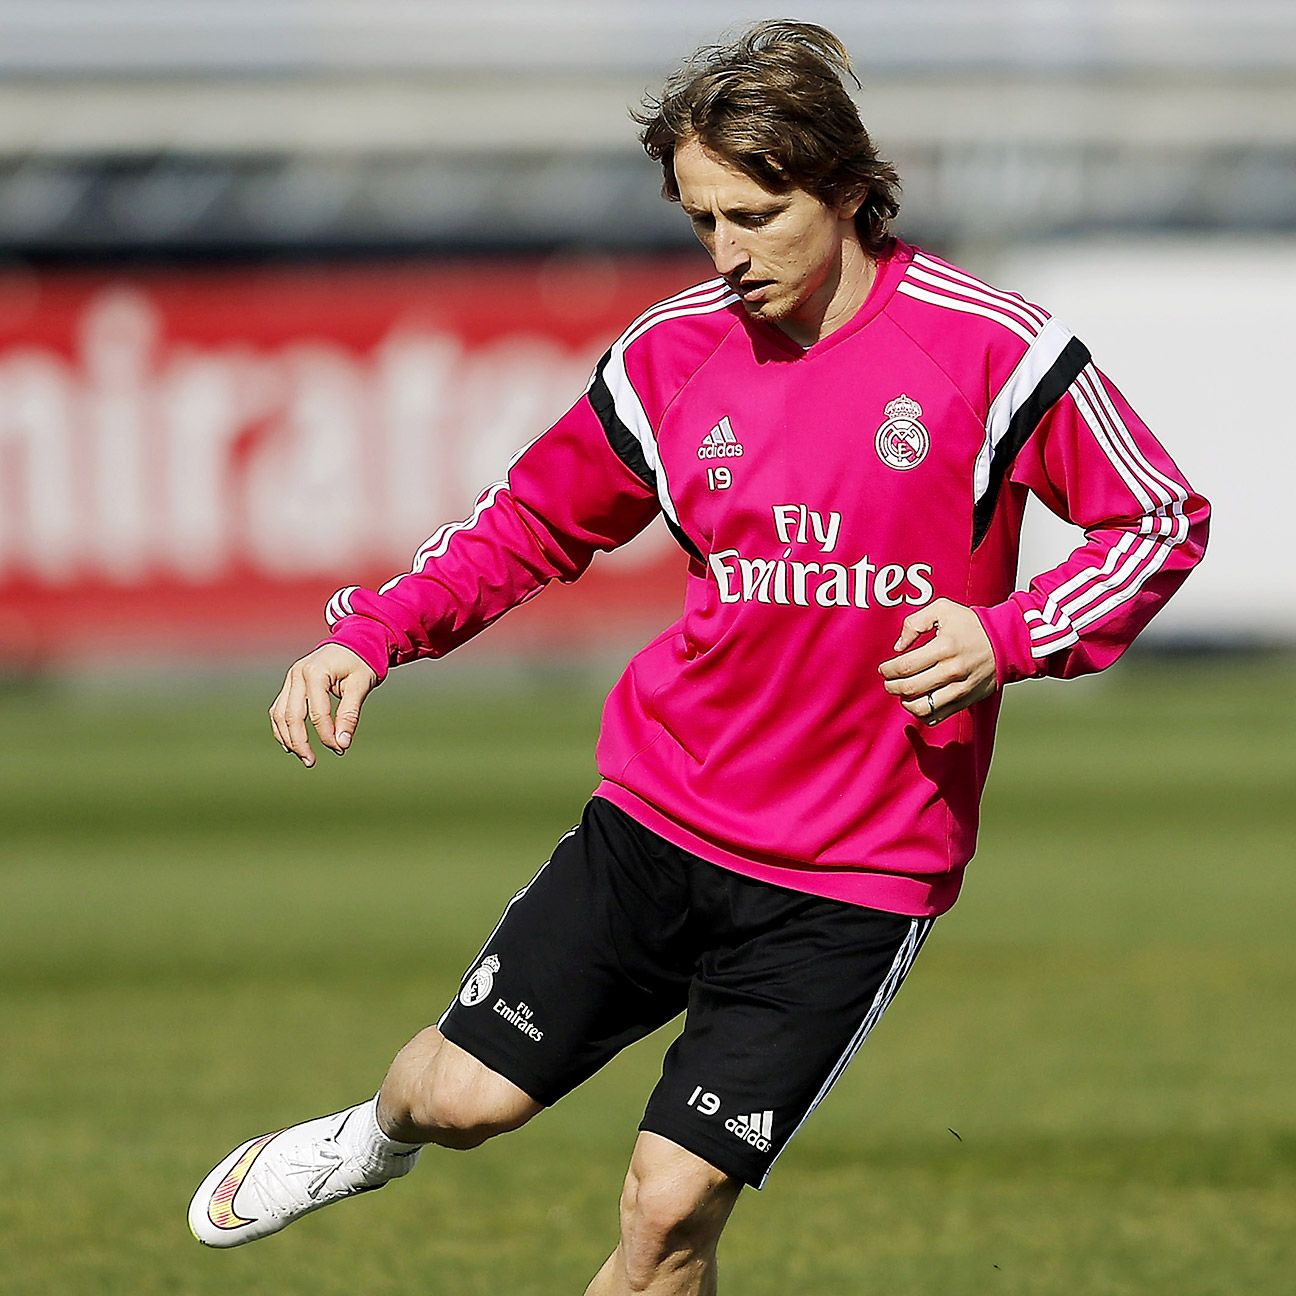 Luka Modric is set to return since sustaining an injury while on international duty with Croatia.